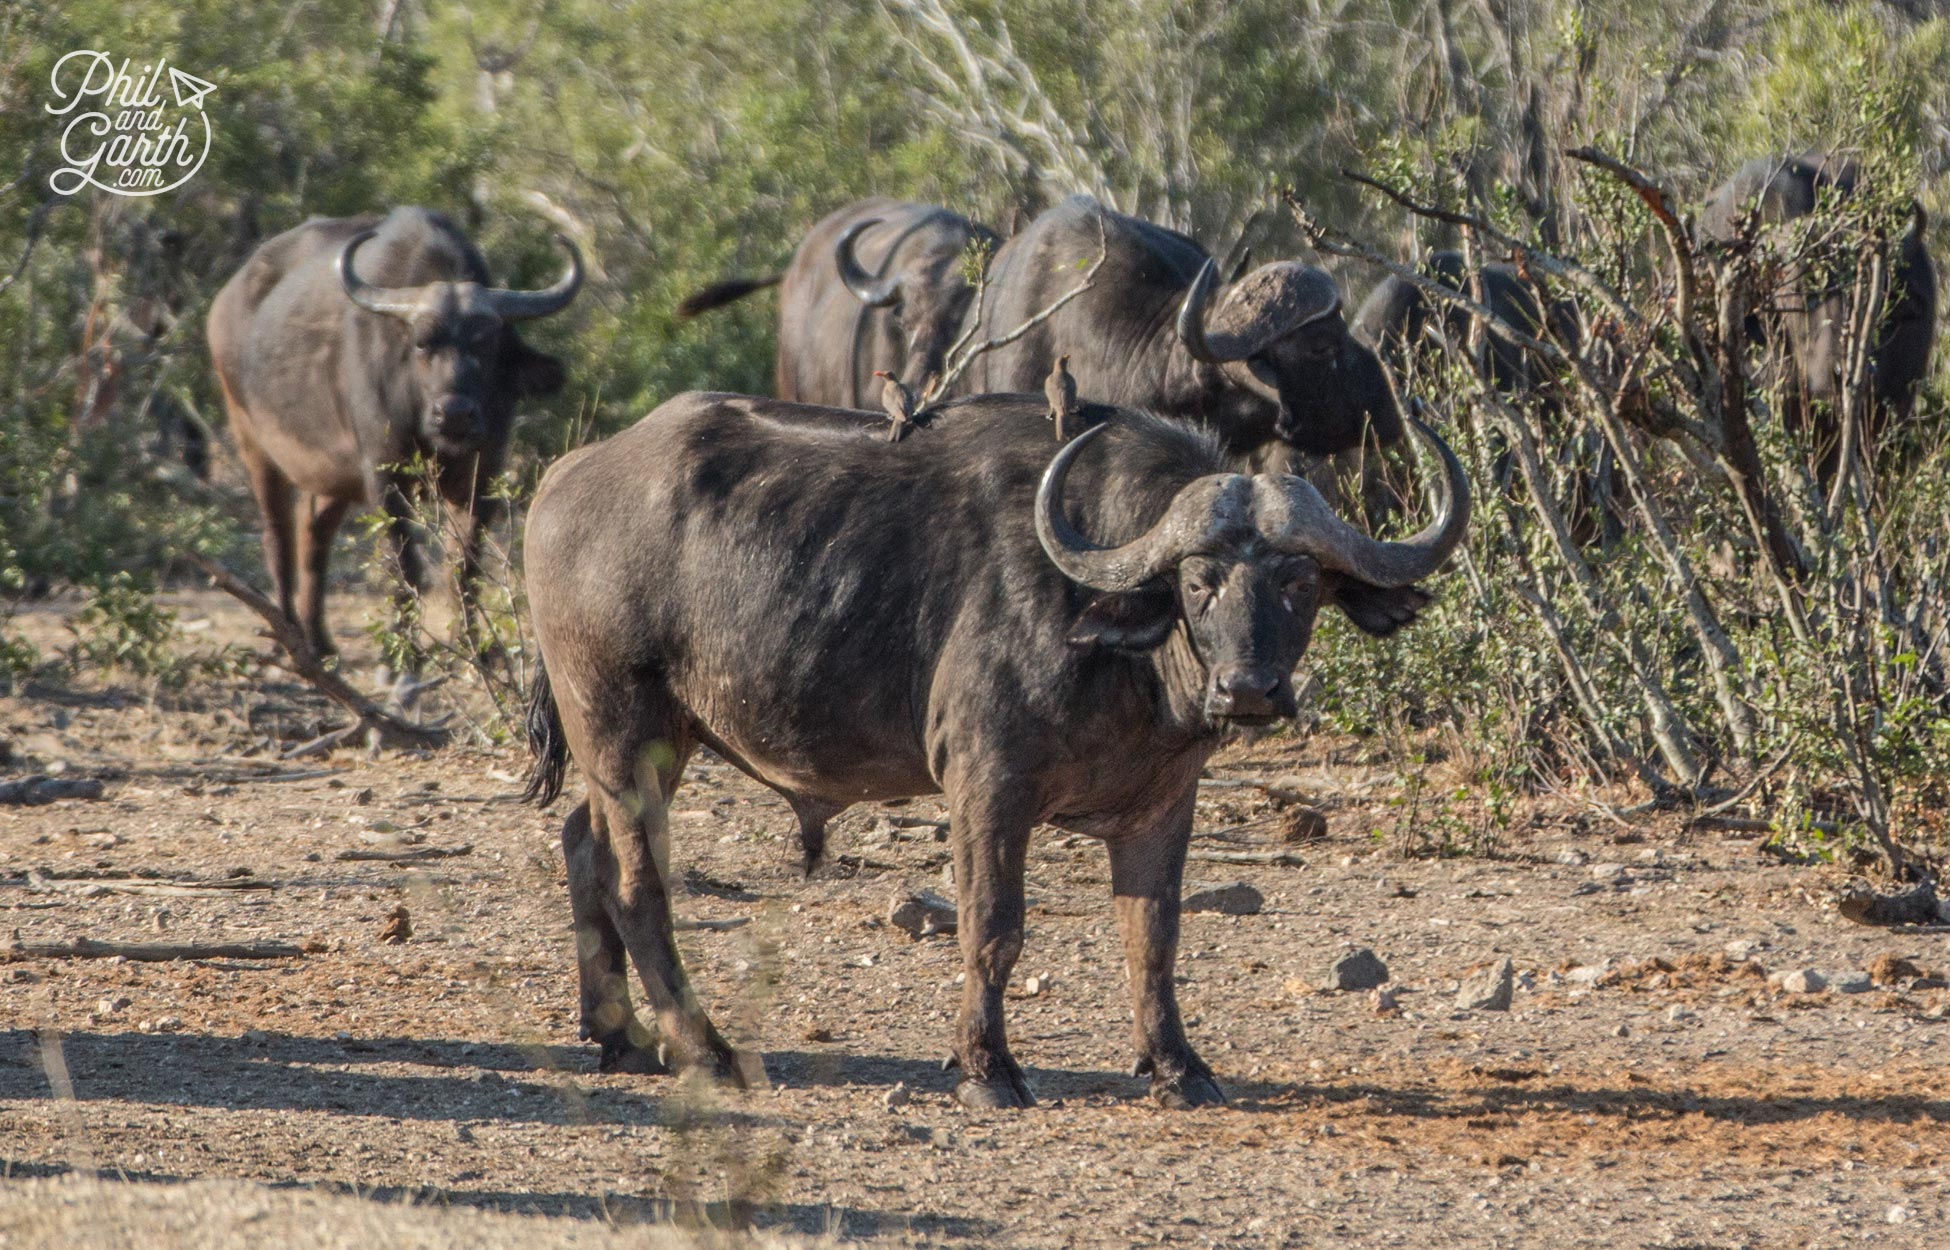 Buffalos - Considered one of the most dangerous animals, because they can charge at the last minute